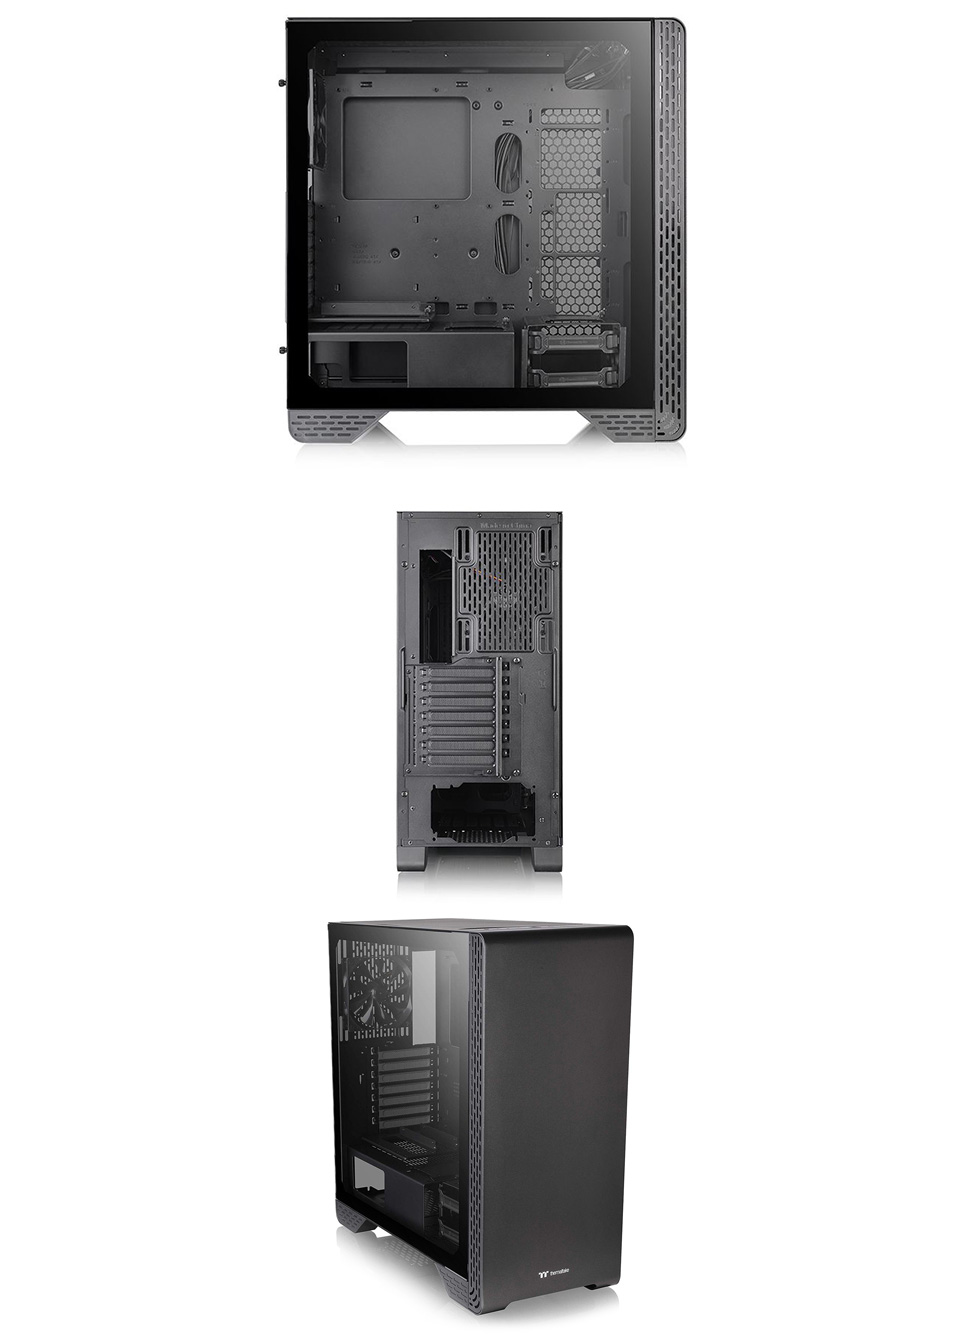 Thermaltake S300 Tempered Glass Mid-Tower Case Black Edition product